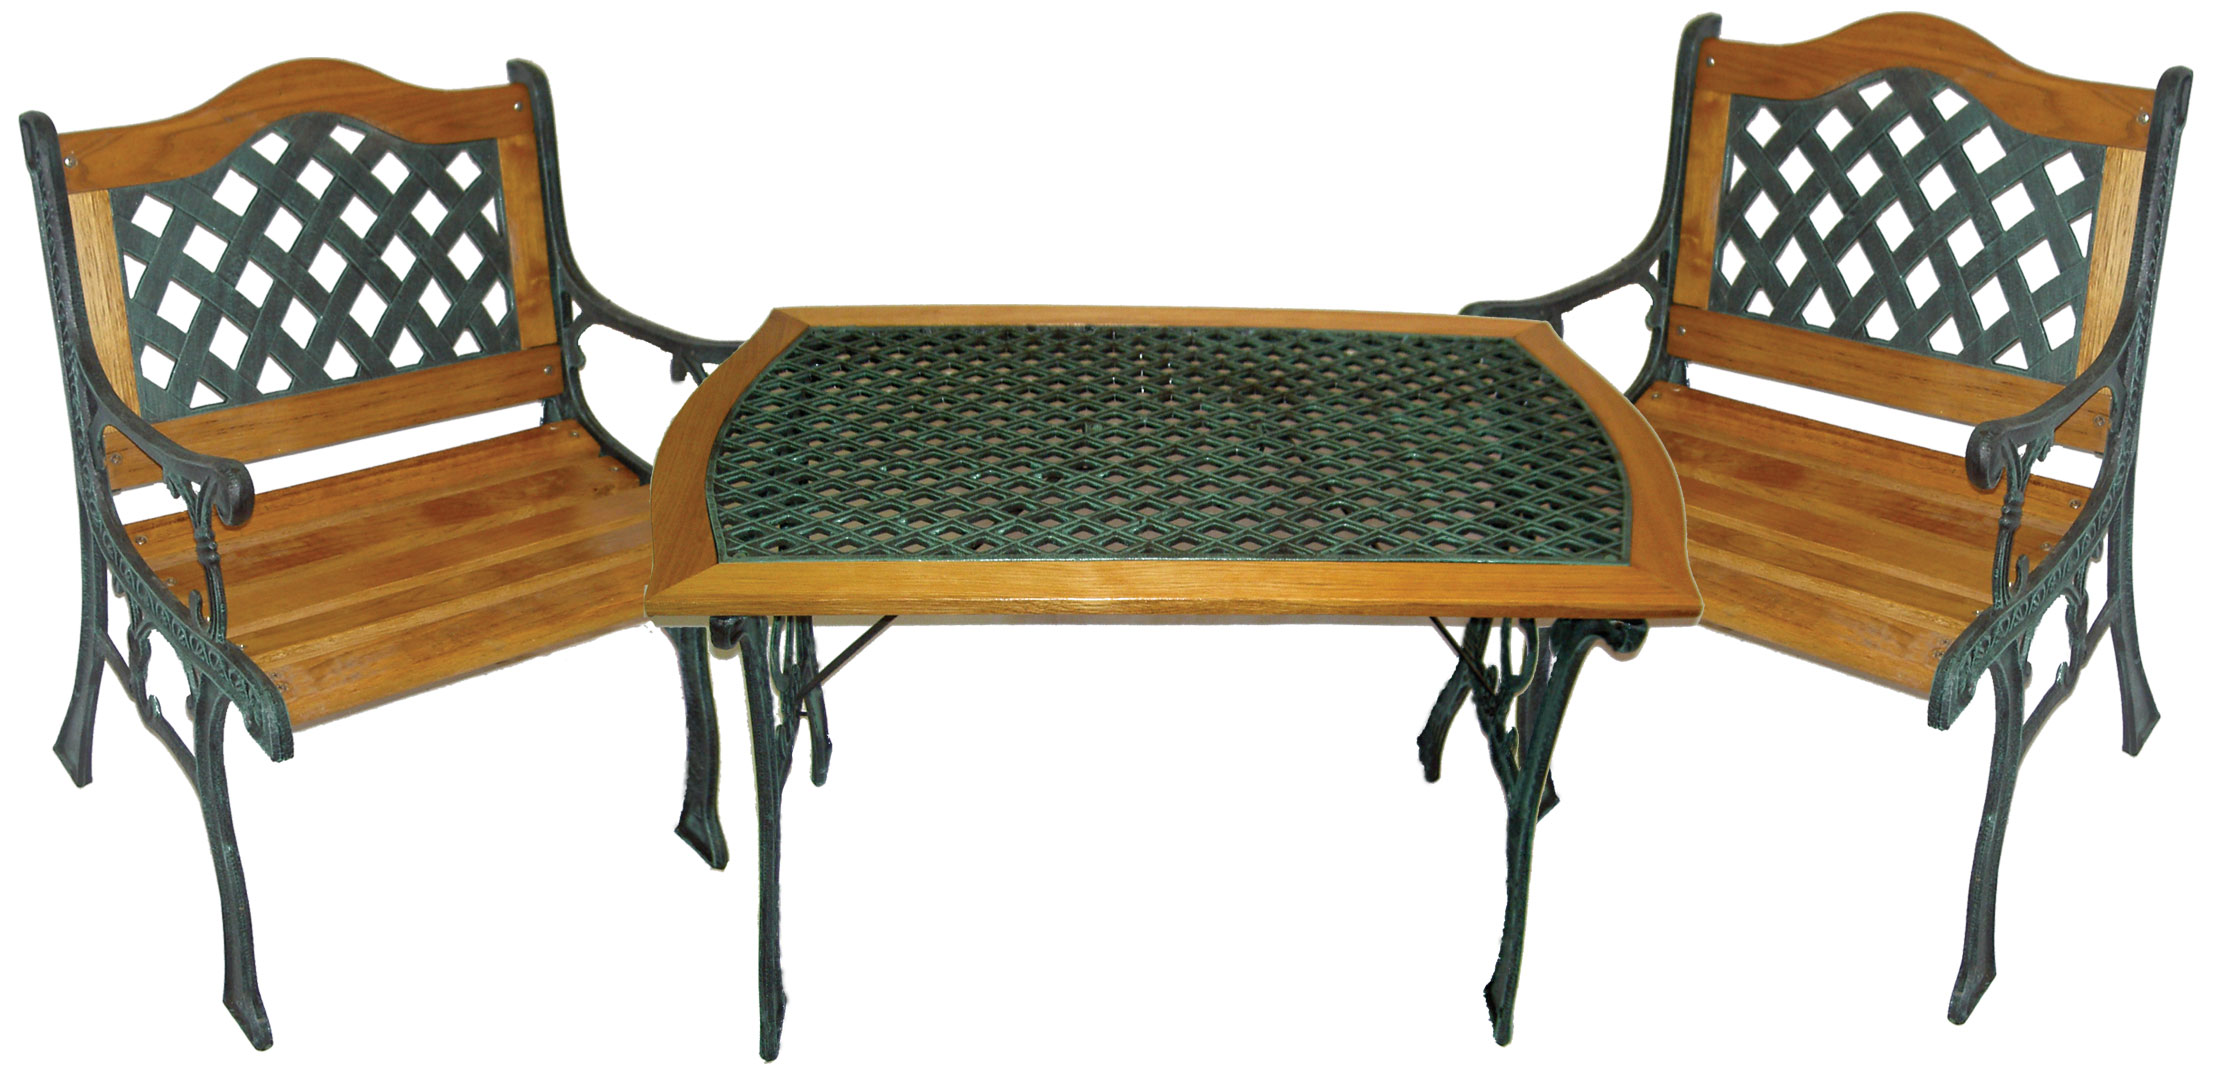 Awesome Table De Jardin Bois Fer Forge Photos - House Design ...